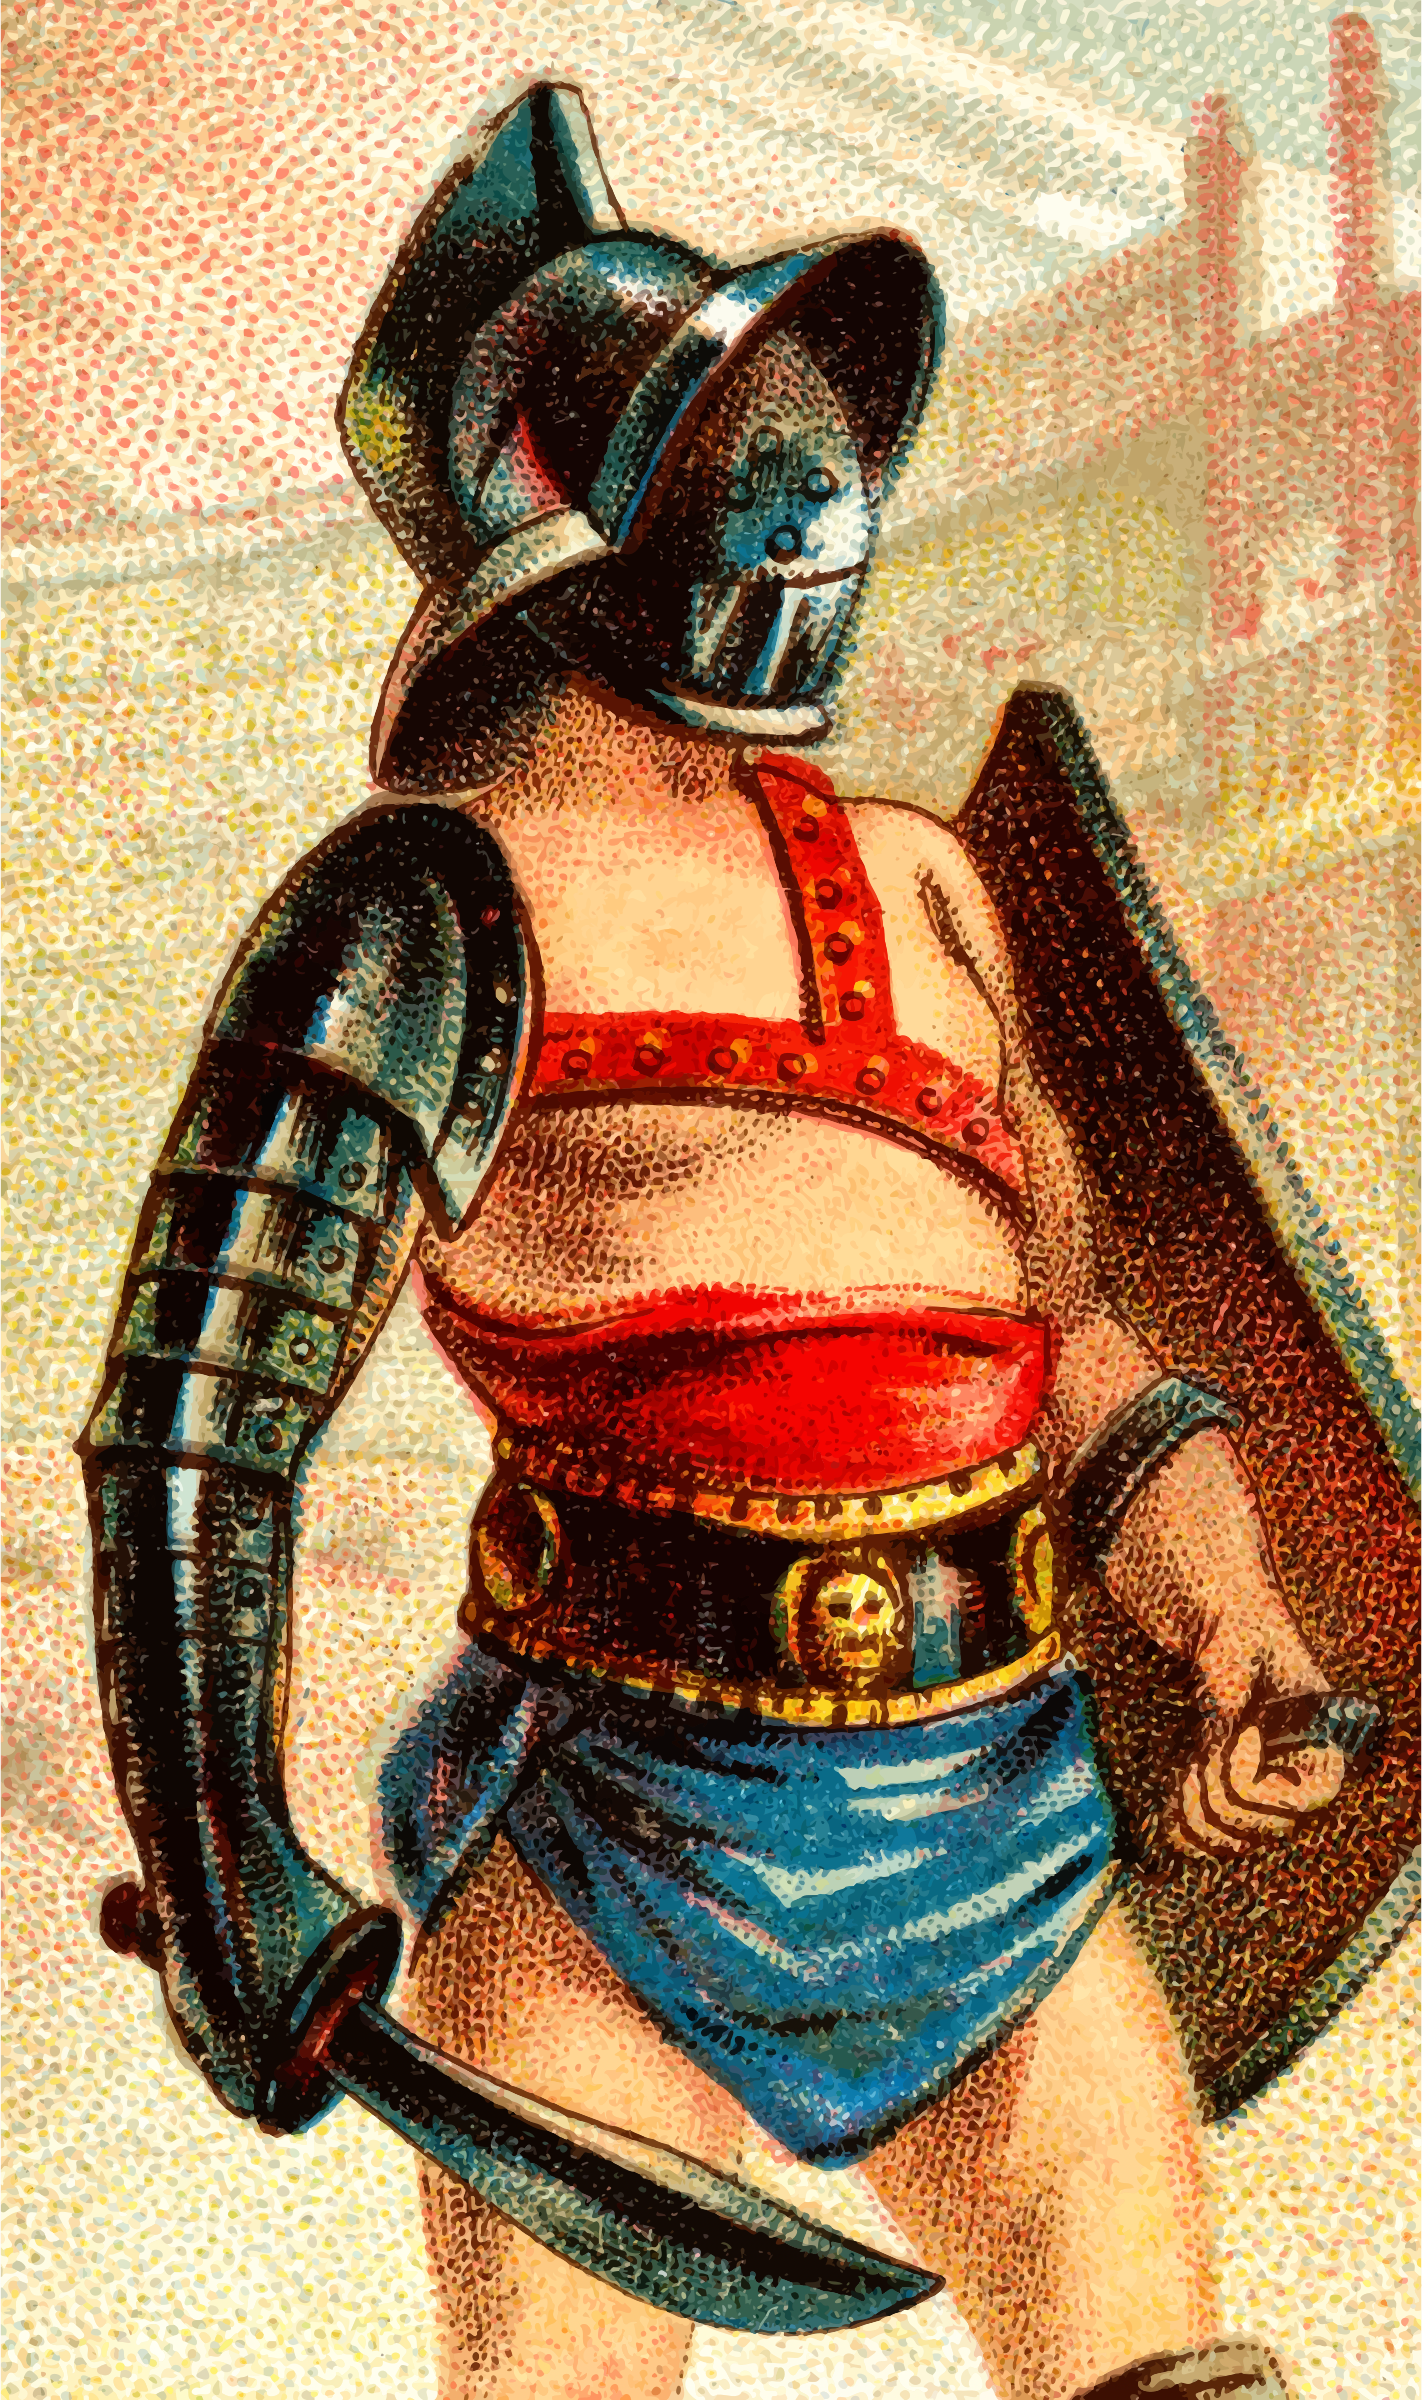 Cigarette card - Gladiator Sword by Firkin